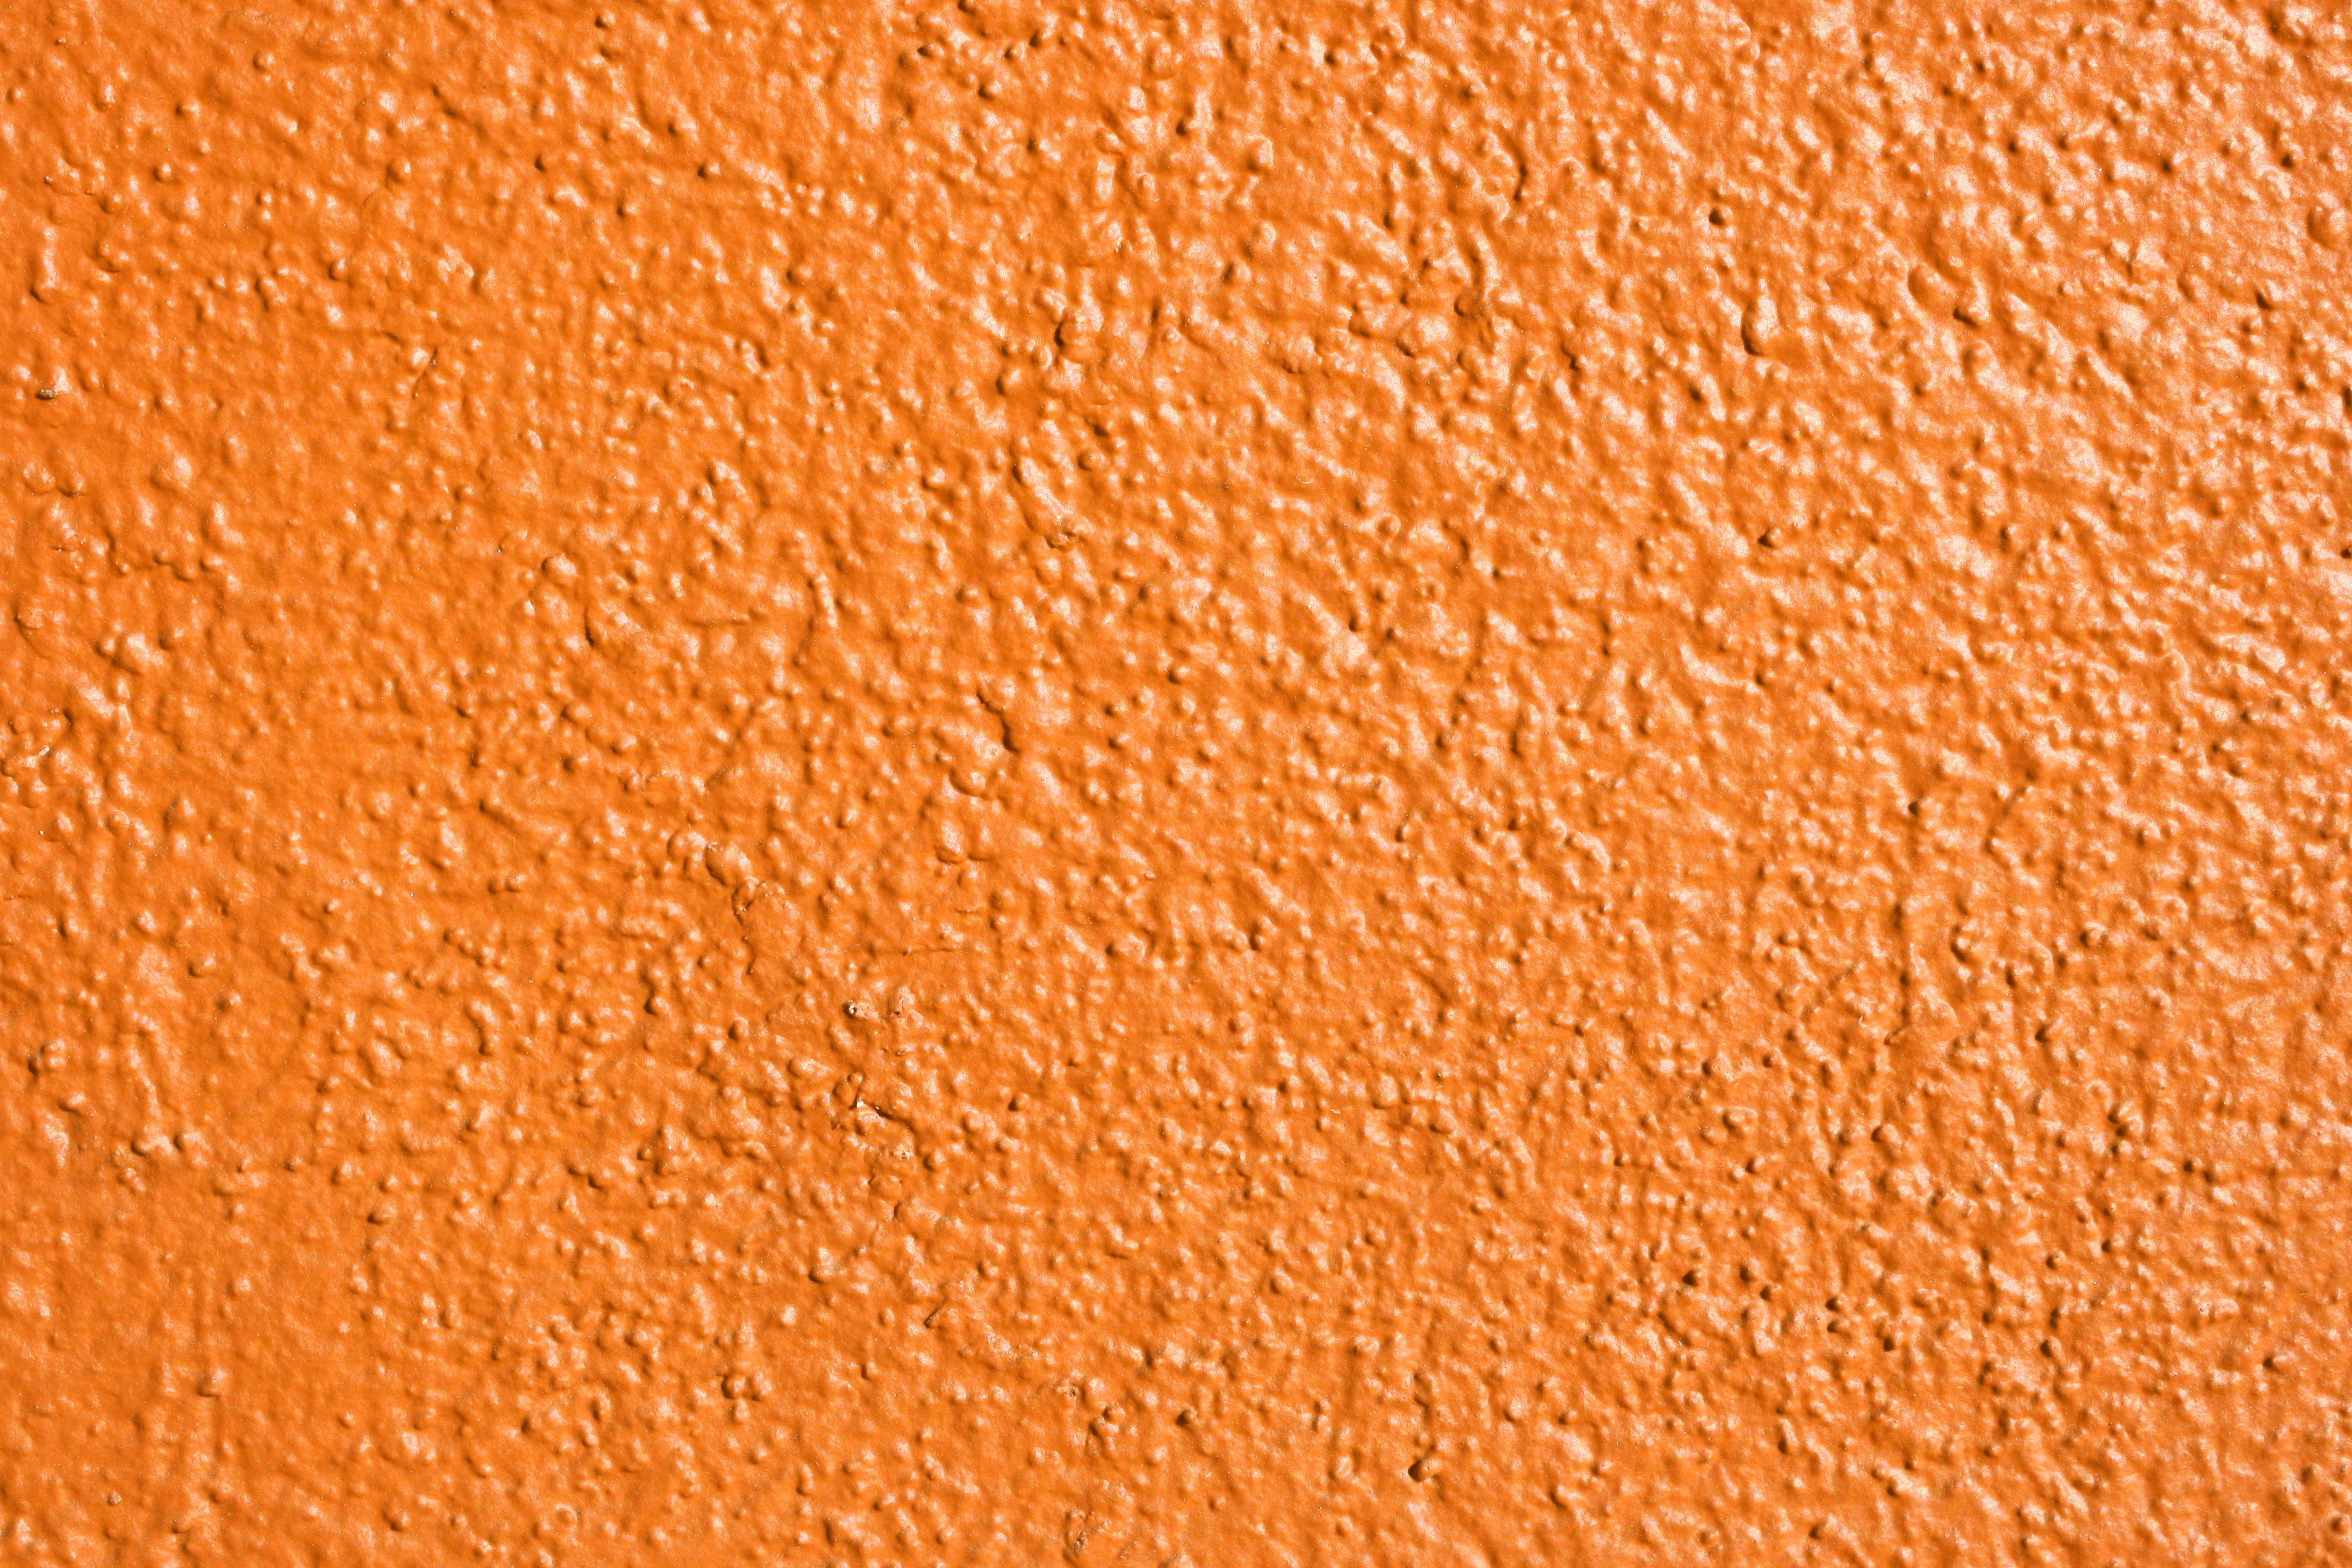 Orange painted wall texture orange pinterest painted for Orange wall paint